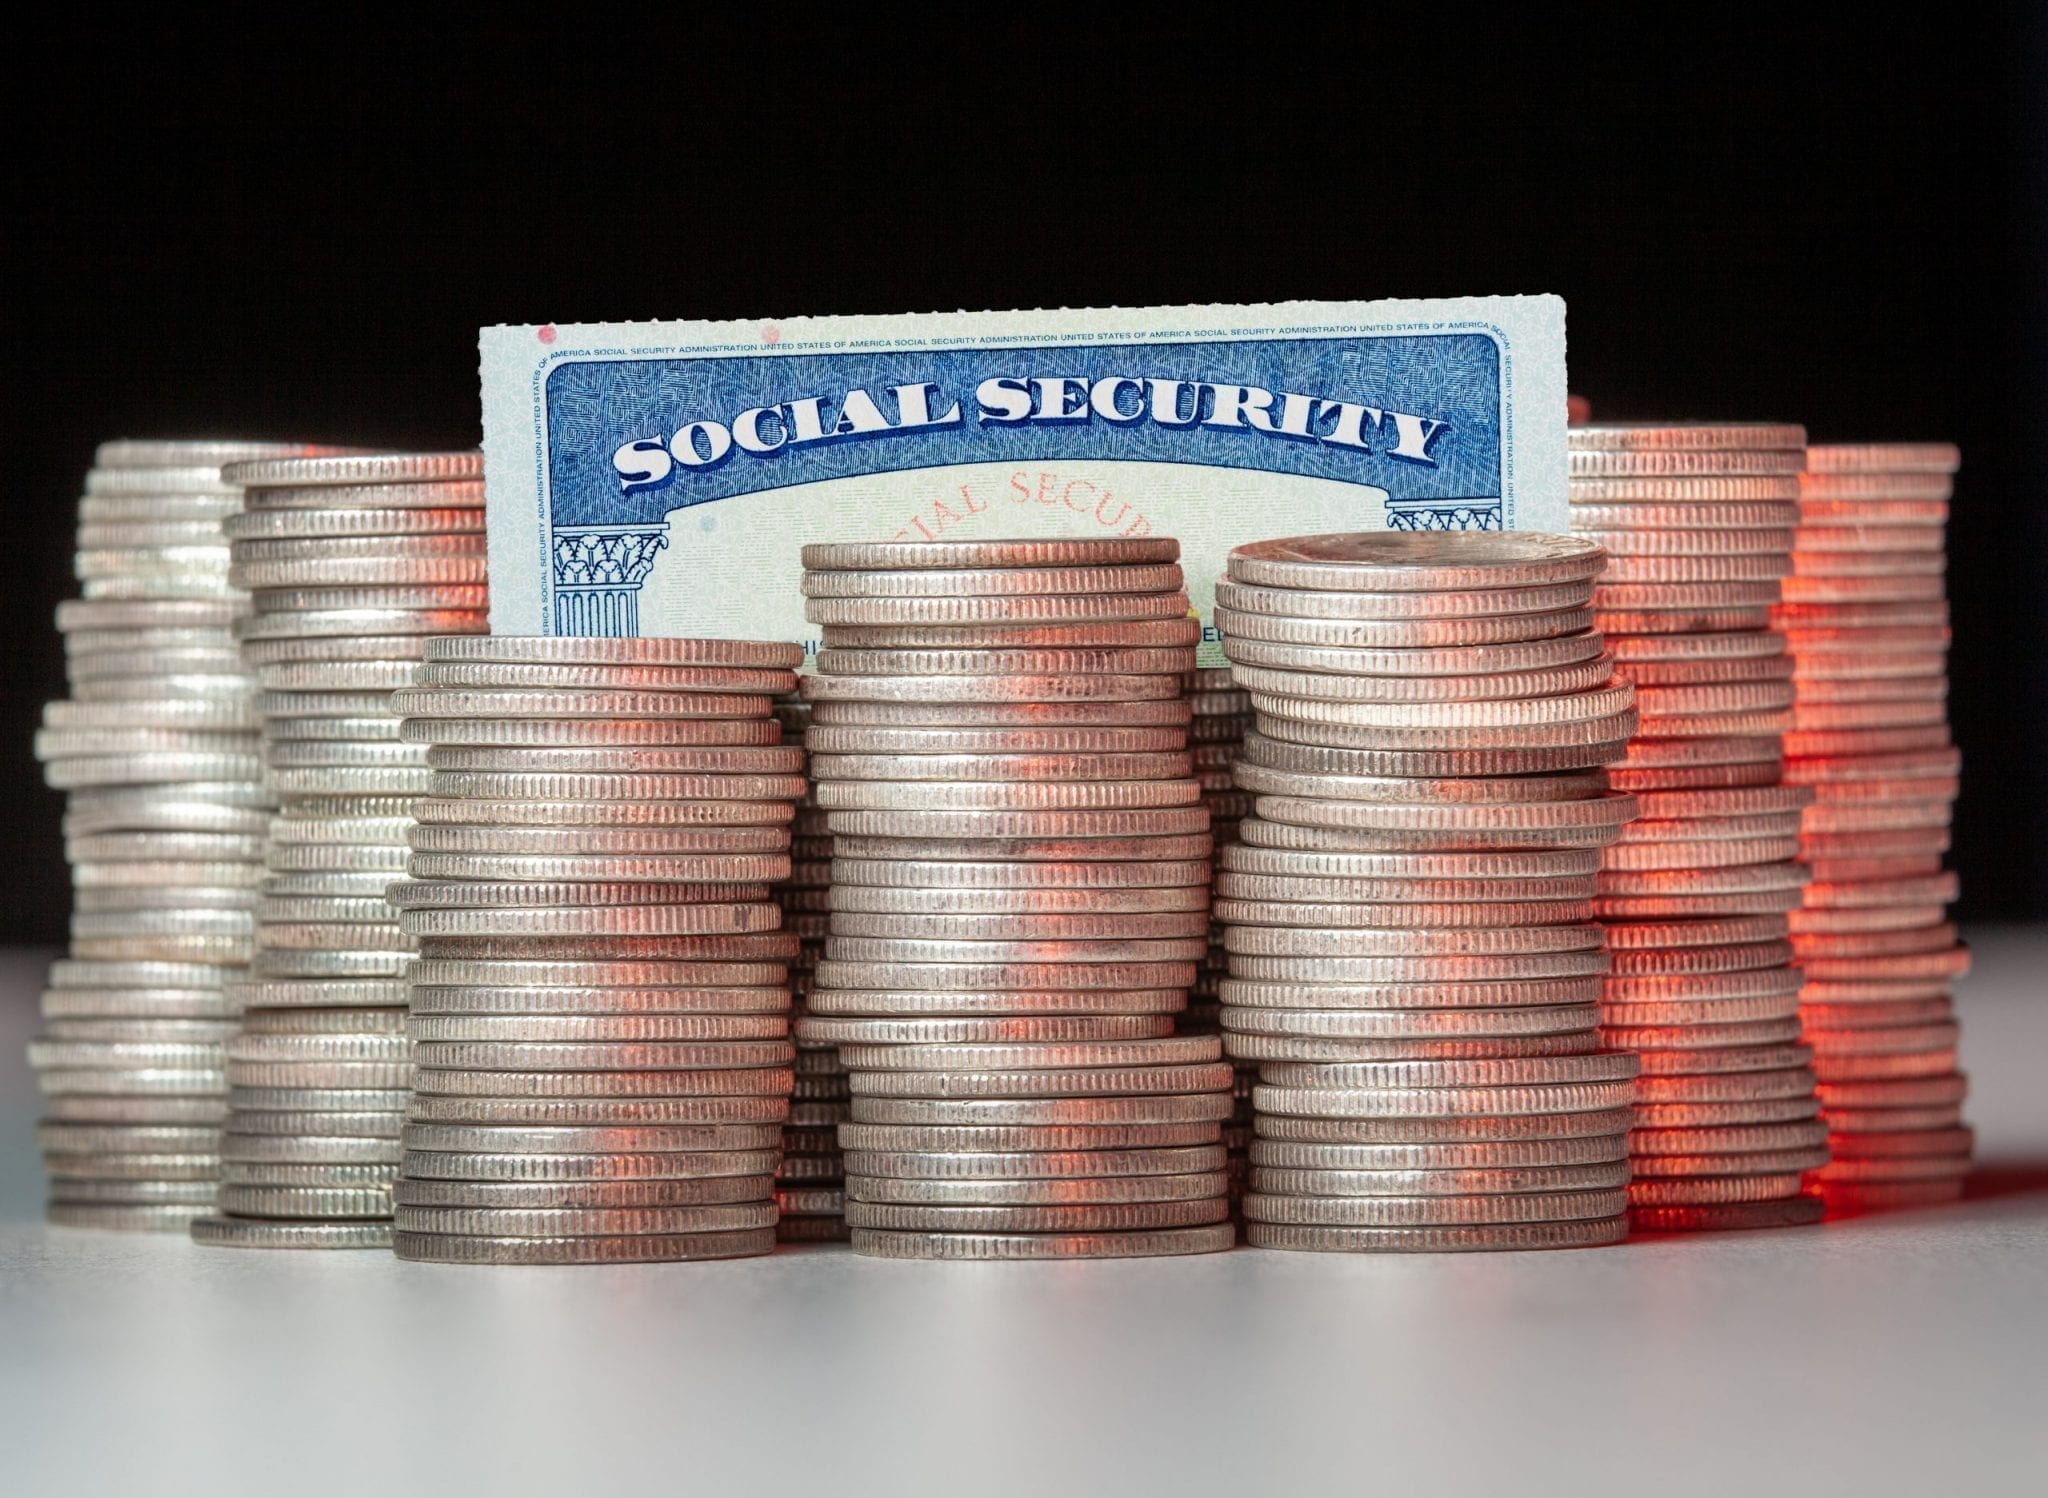 social-security-card-in-stack-of-silver-coins